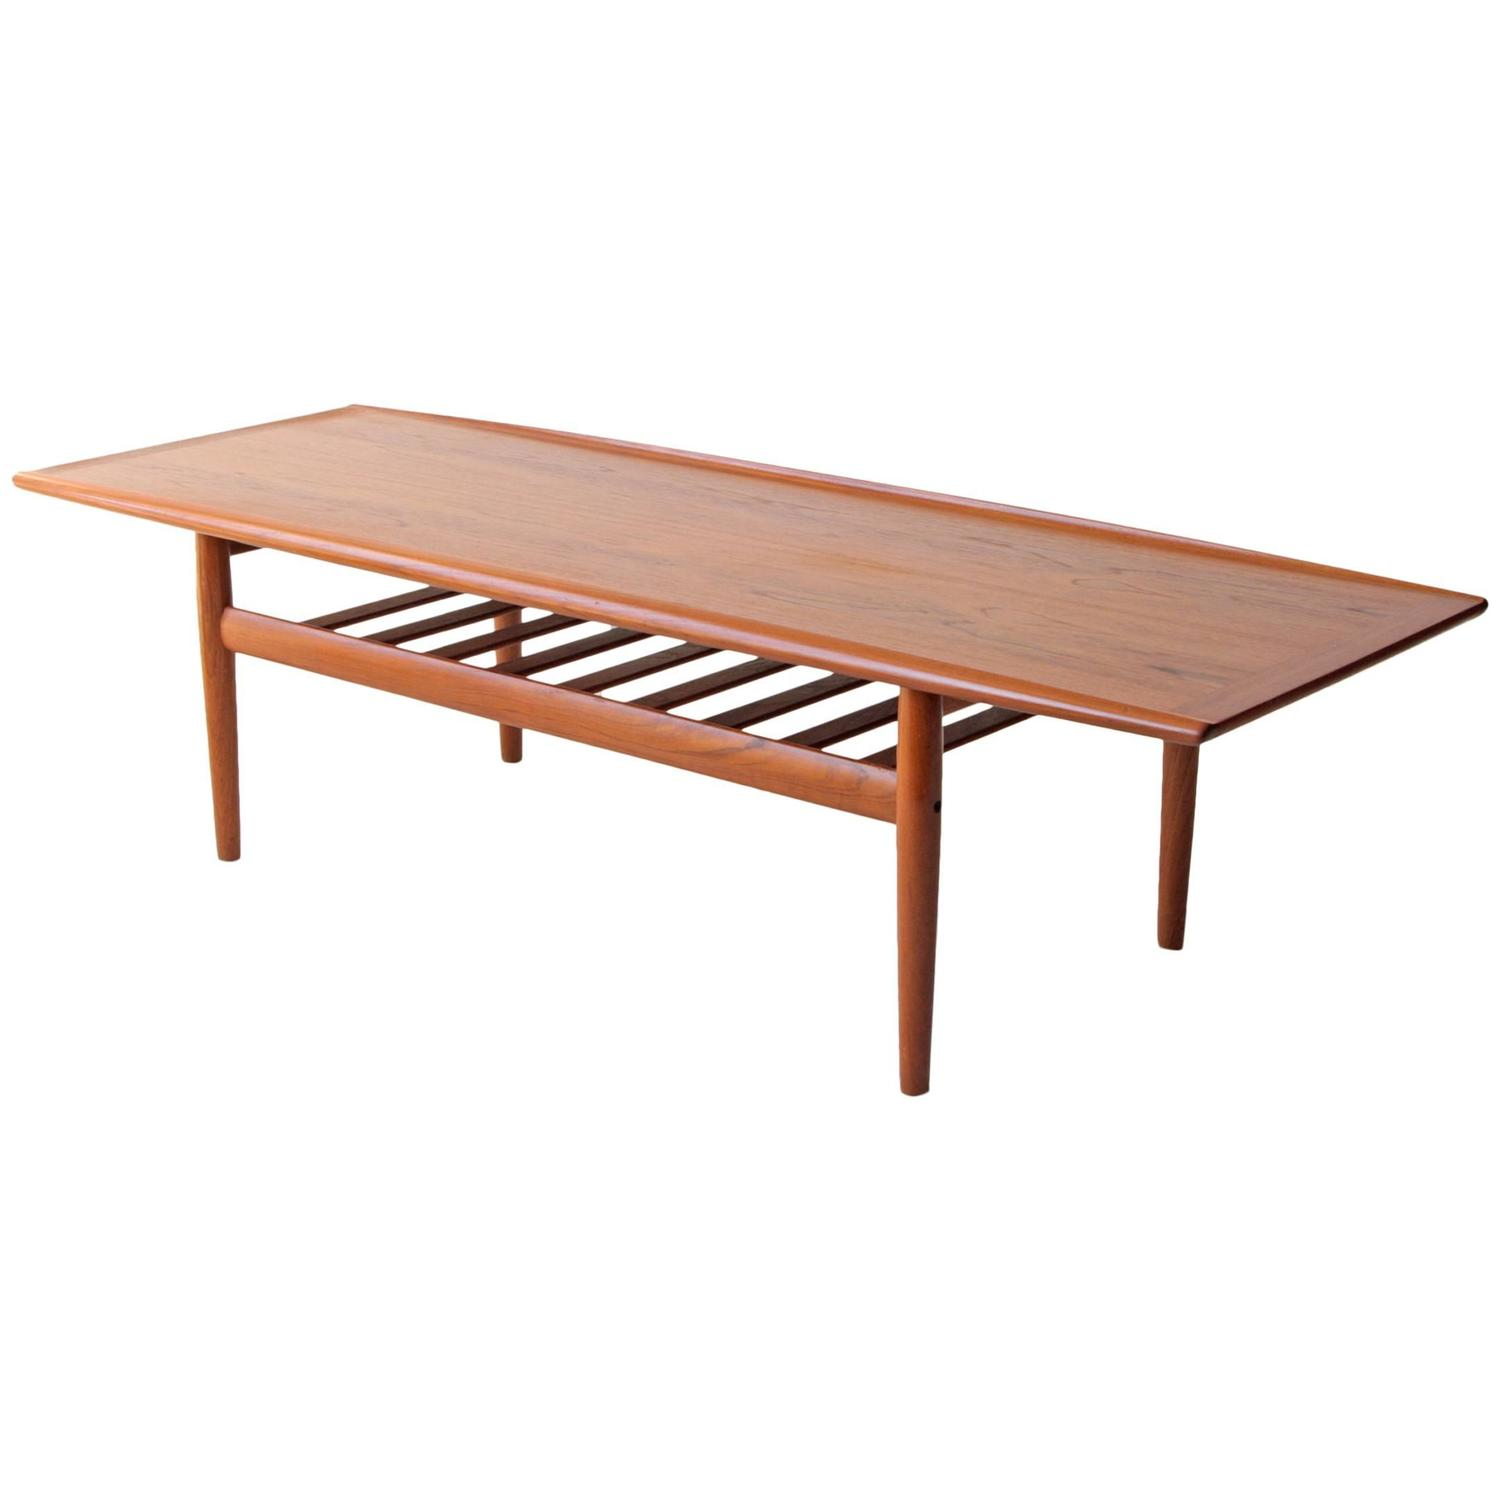 Grete jalk danish modern two tier teak coffee table at 1stdibs for Modern coffee table